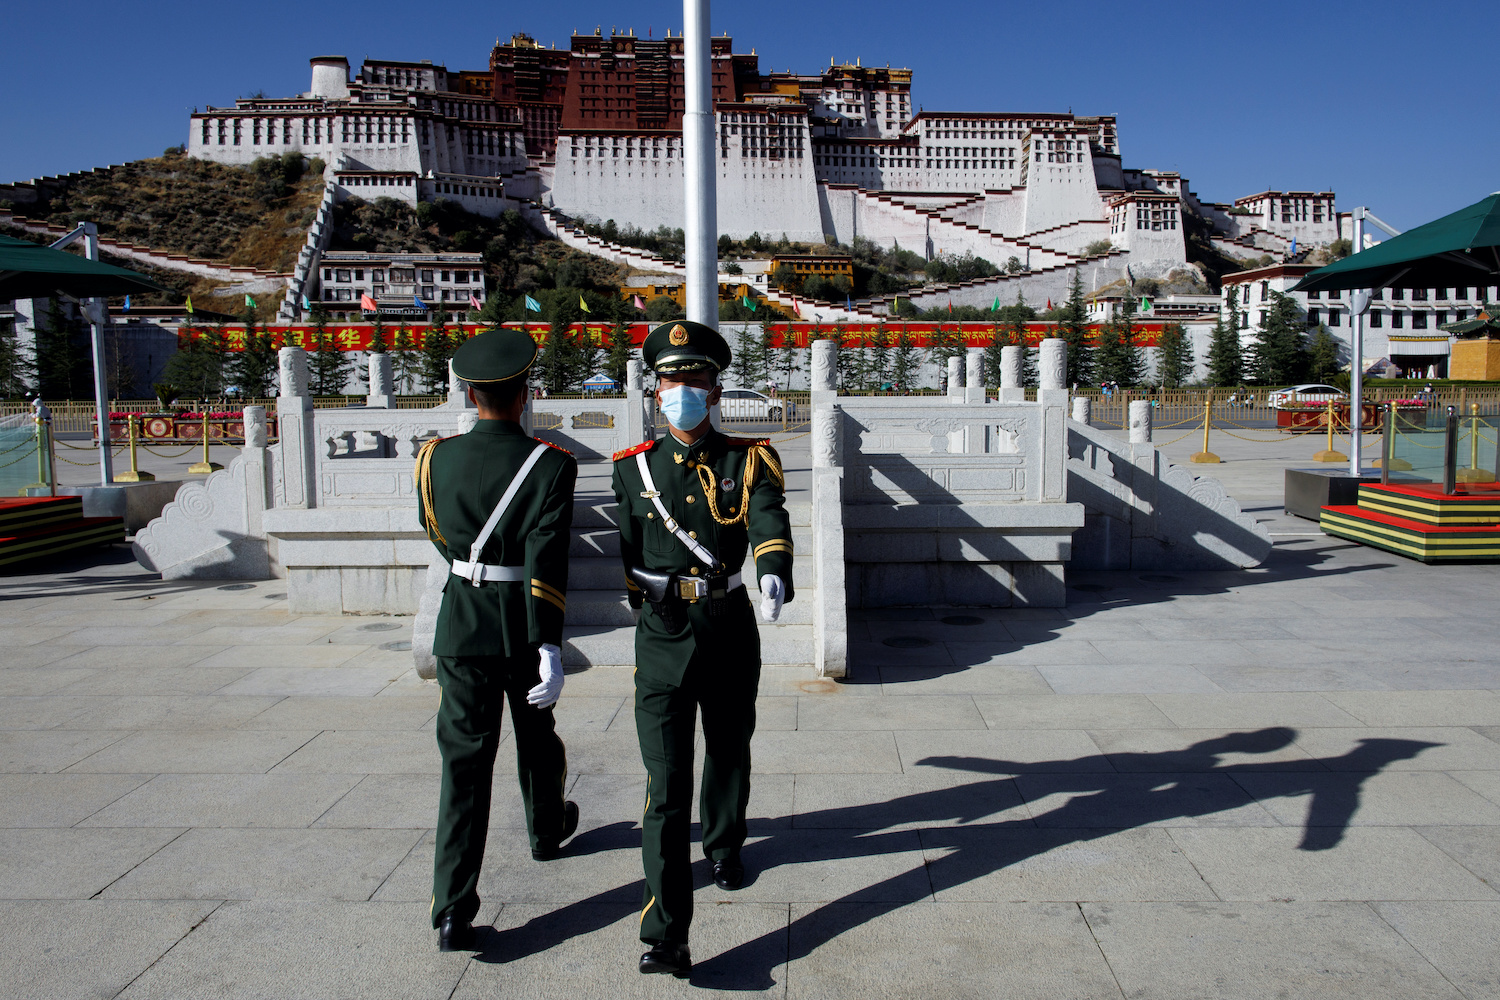 Paramilitary police officers take part in a change of the guard in front of the Potala Palace in Lhasa, during a Chinese government-organised media tour of the Tibet Autonomous Region on Oct 15. (Reuters Photo)